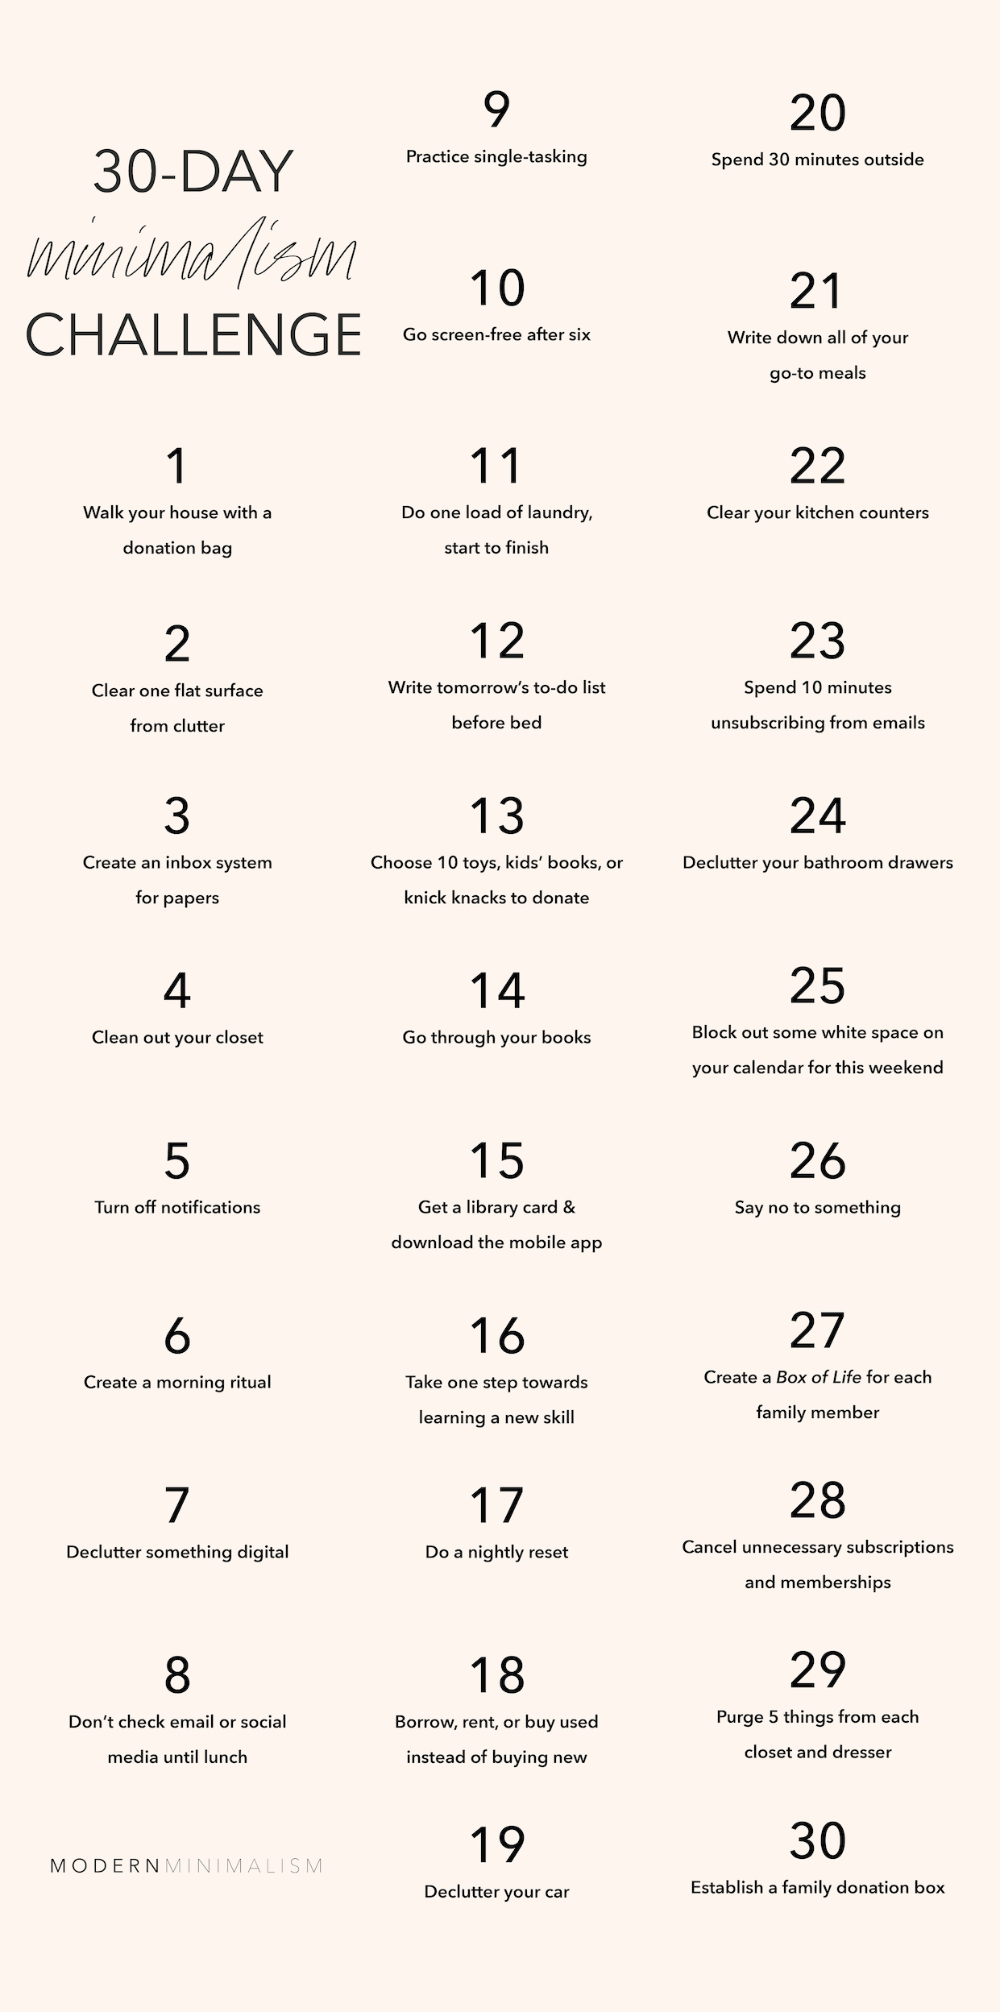 Get your FREE printable of this 30-Day Minimalism Challenge that will help you declutter and simplify your home, schedule, and mental load to make room for the things that matter most. #minimalismchallenge #minimalism #minimalist #minimalistlife #whatisminimalism #simpleliving #minimalistlifestyle #capsulewardrobe #declutterchallenge #declutter | modernminimalism.com